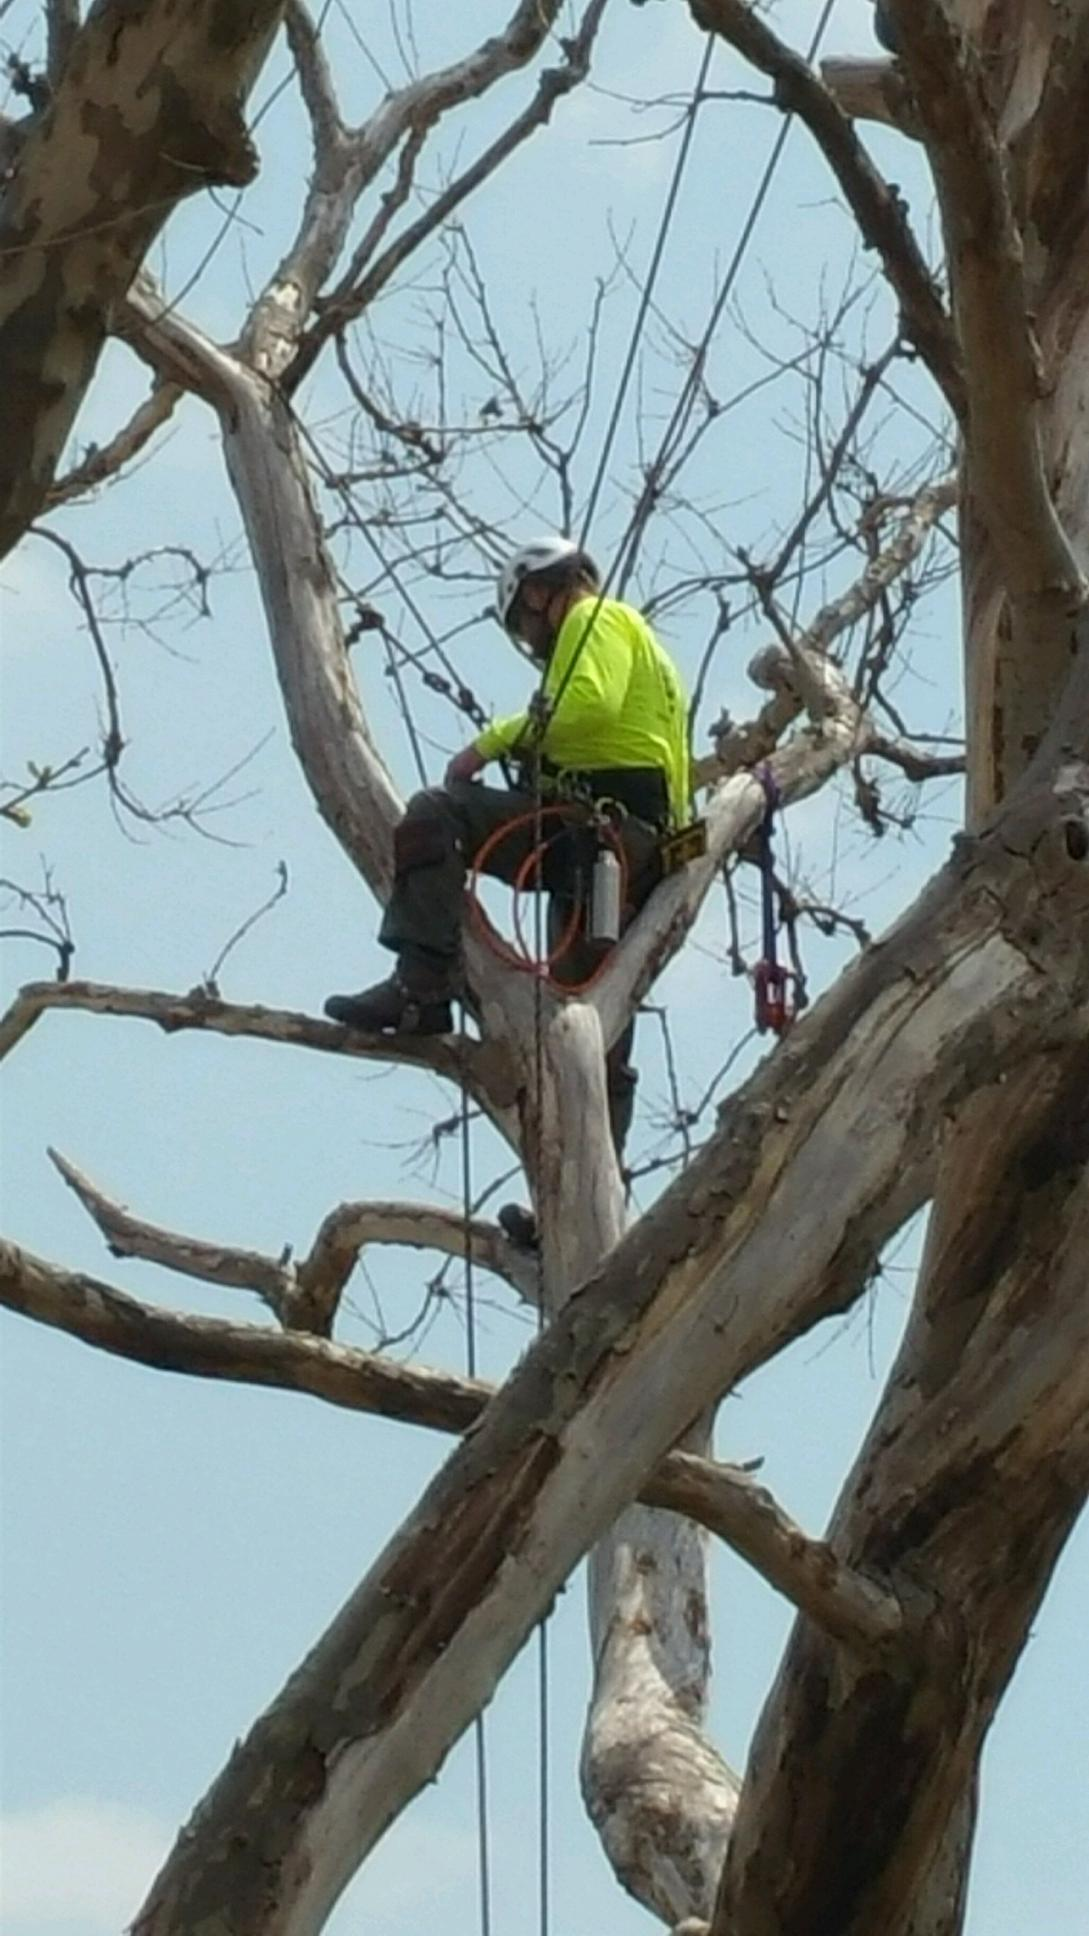 Arborist climbing a tree on Liberty Island